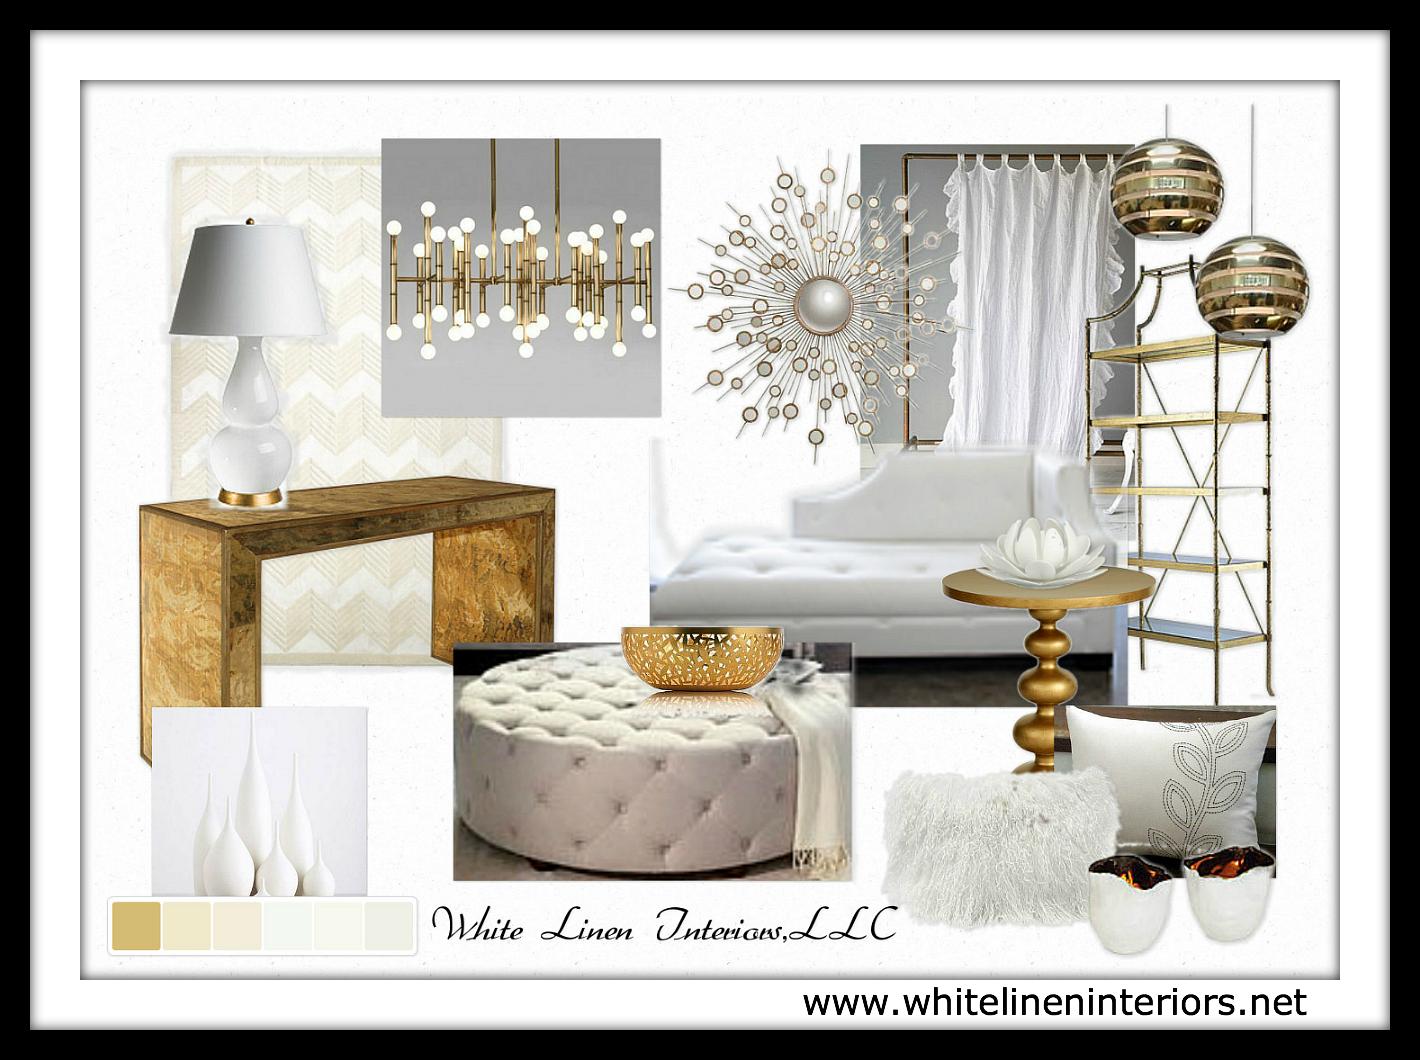 GALLERY SLIDES – White Linen Interiors